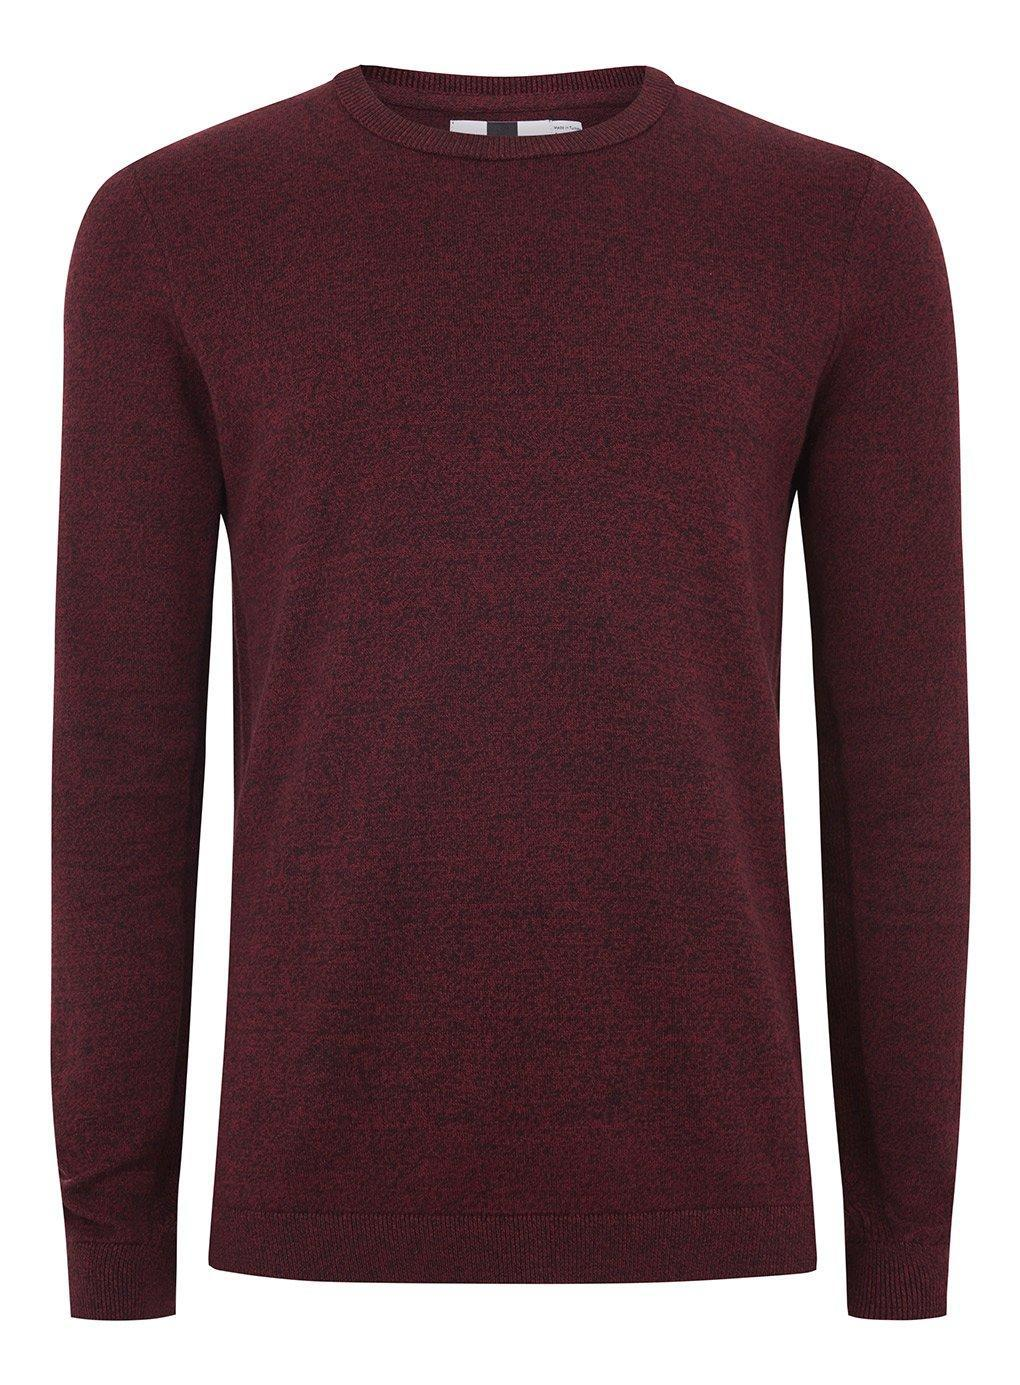 fd6e30969370 Lyst - TOPMAN Burgundy And Black Twist Side Ribbed Jumper in Red for ...